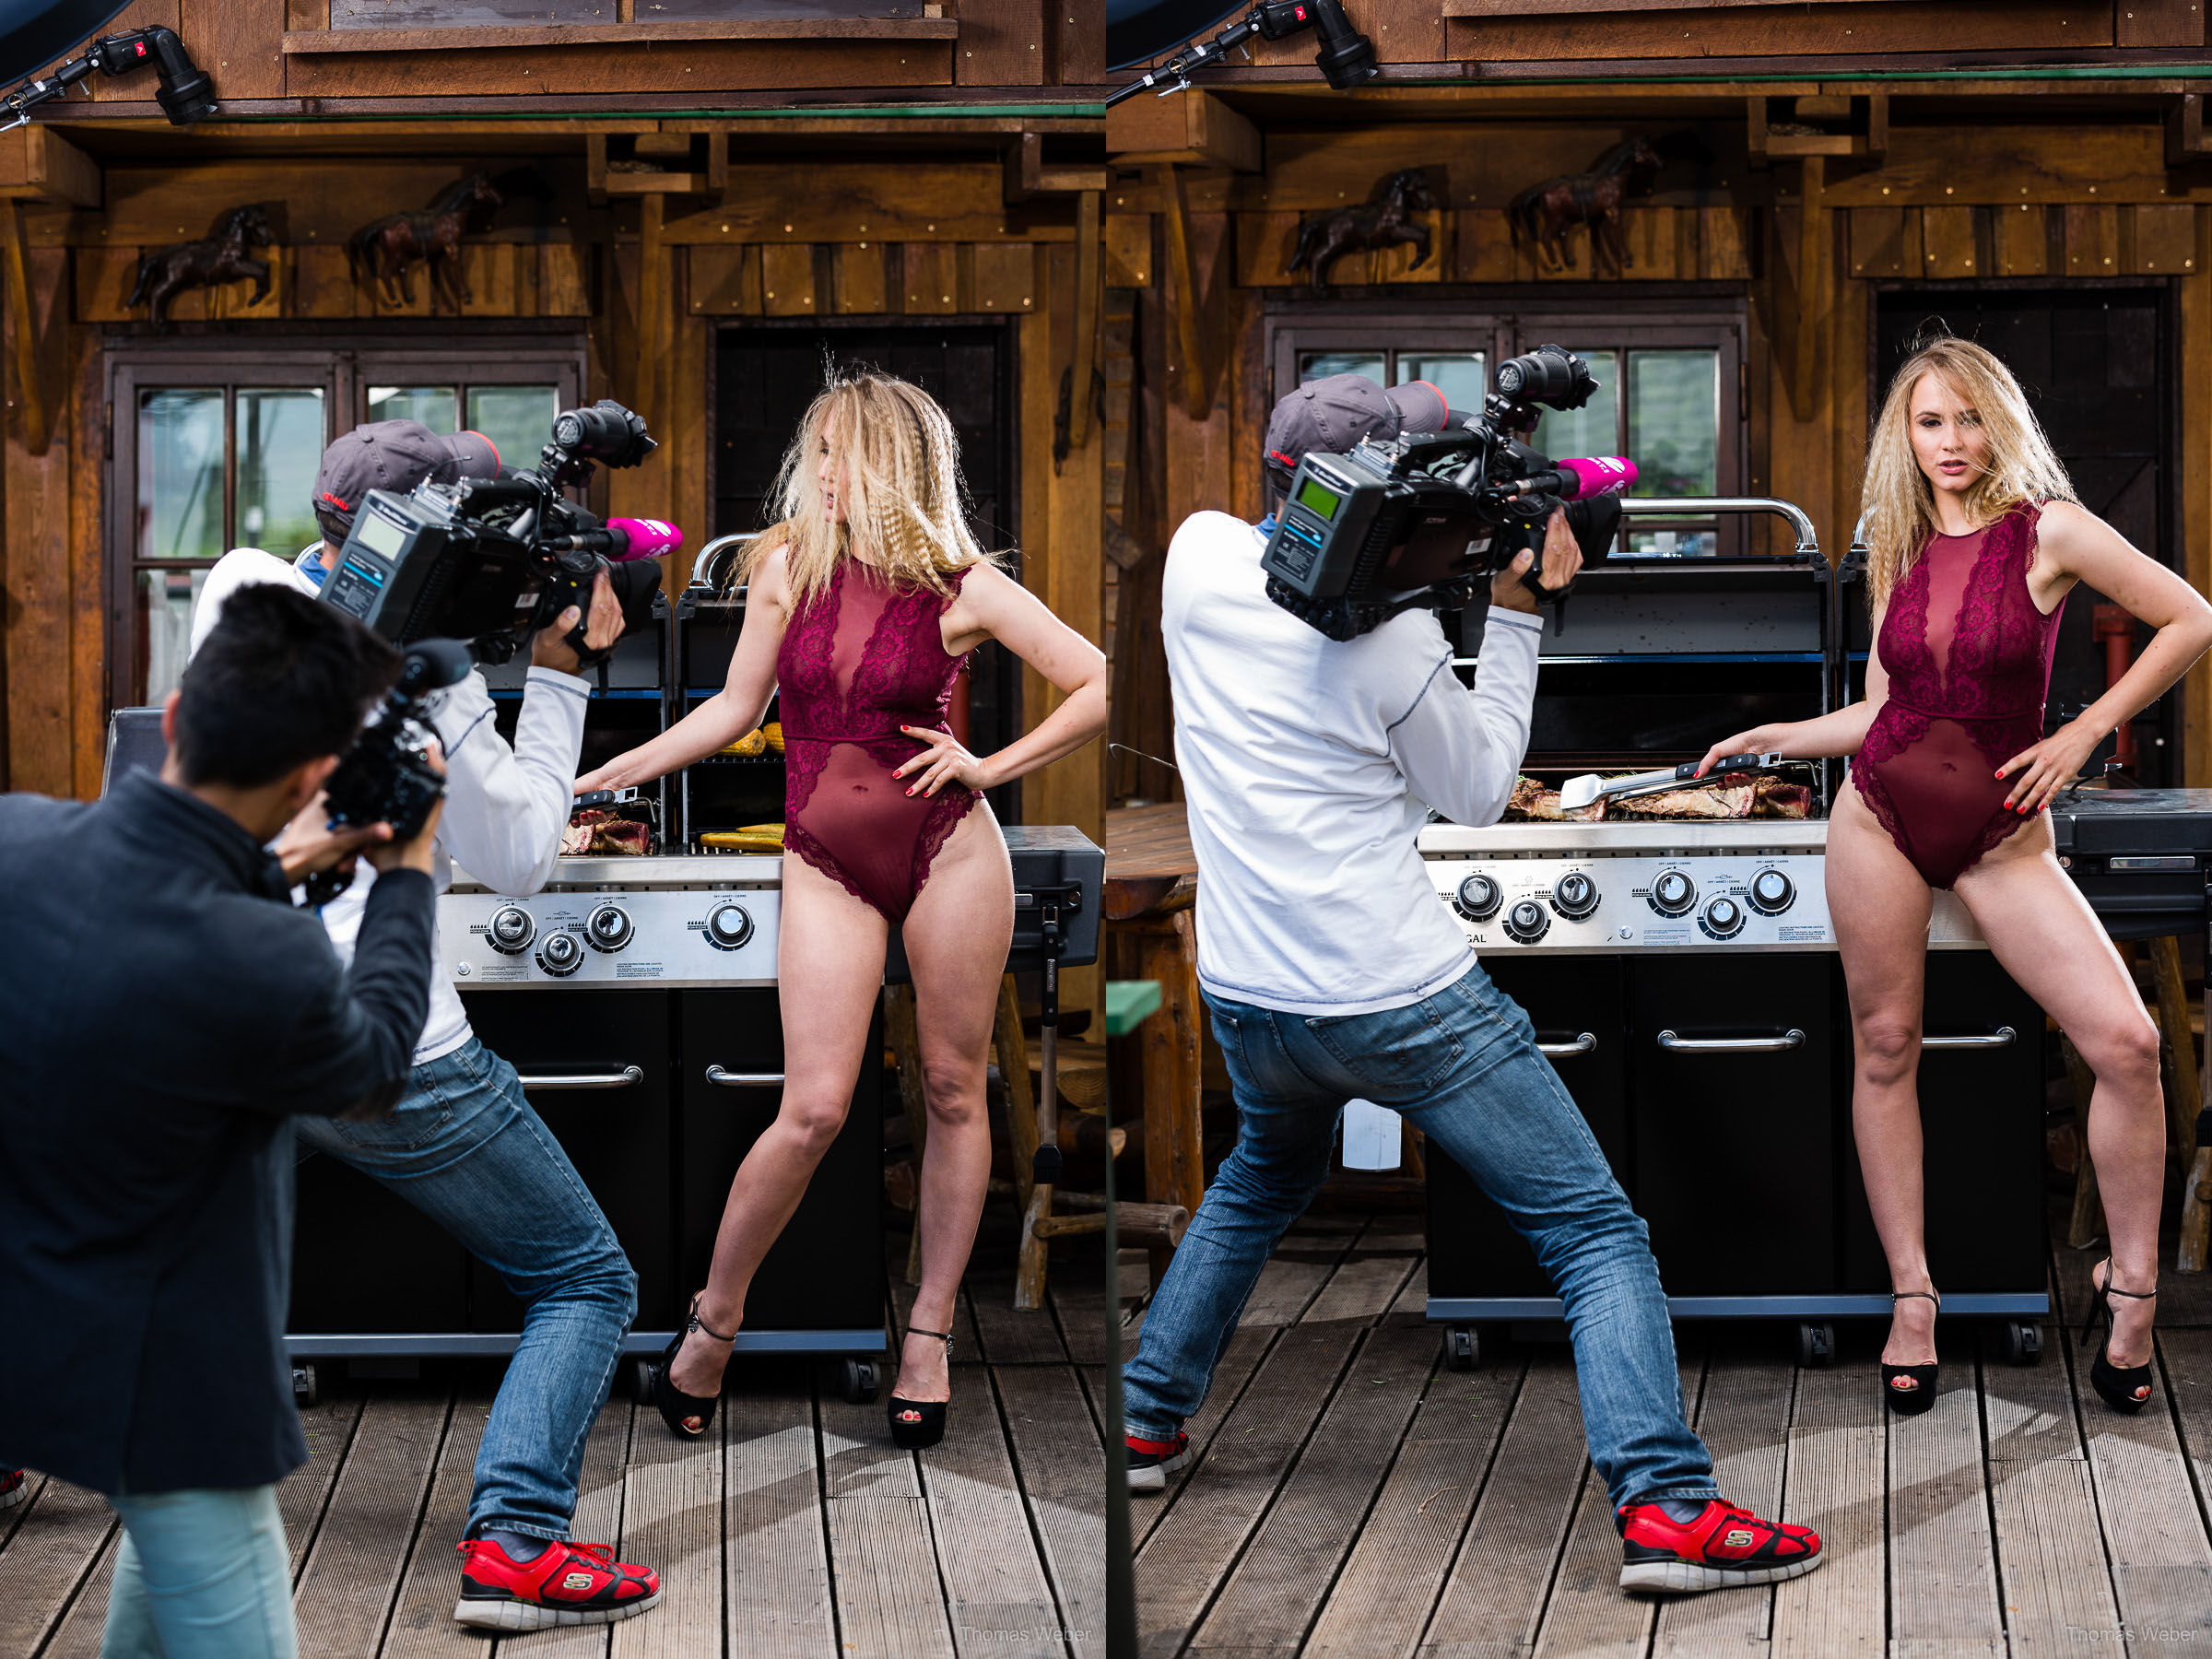 BBQ-Chicks-Kalendershooting, Fotograf Thomas Weber aus Oldenburg